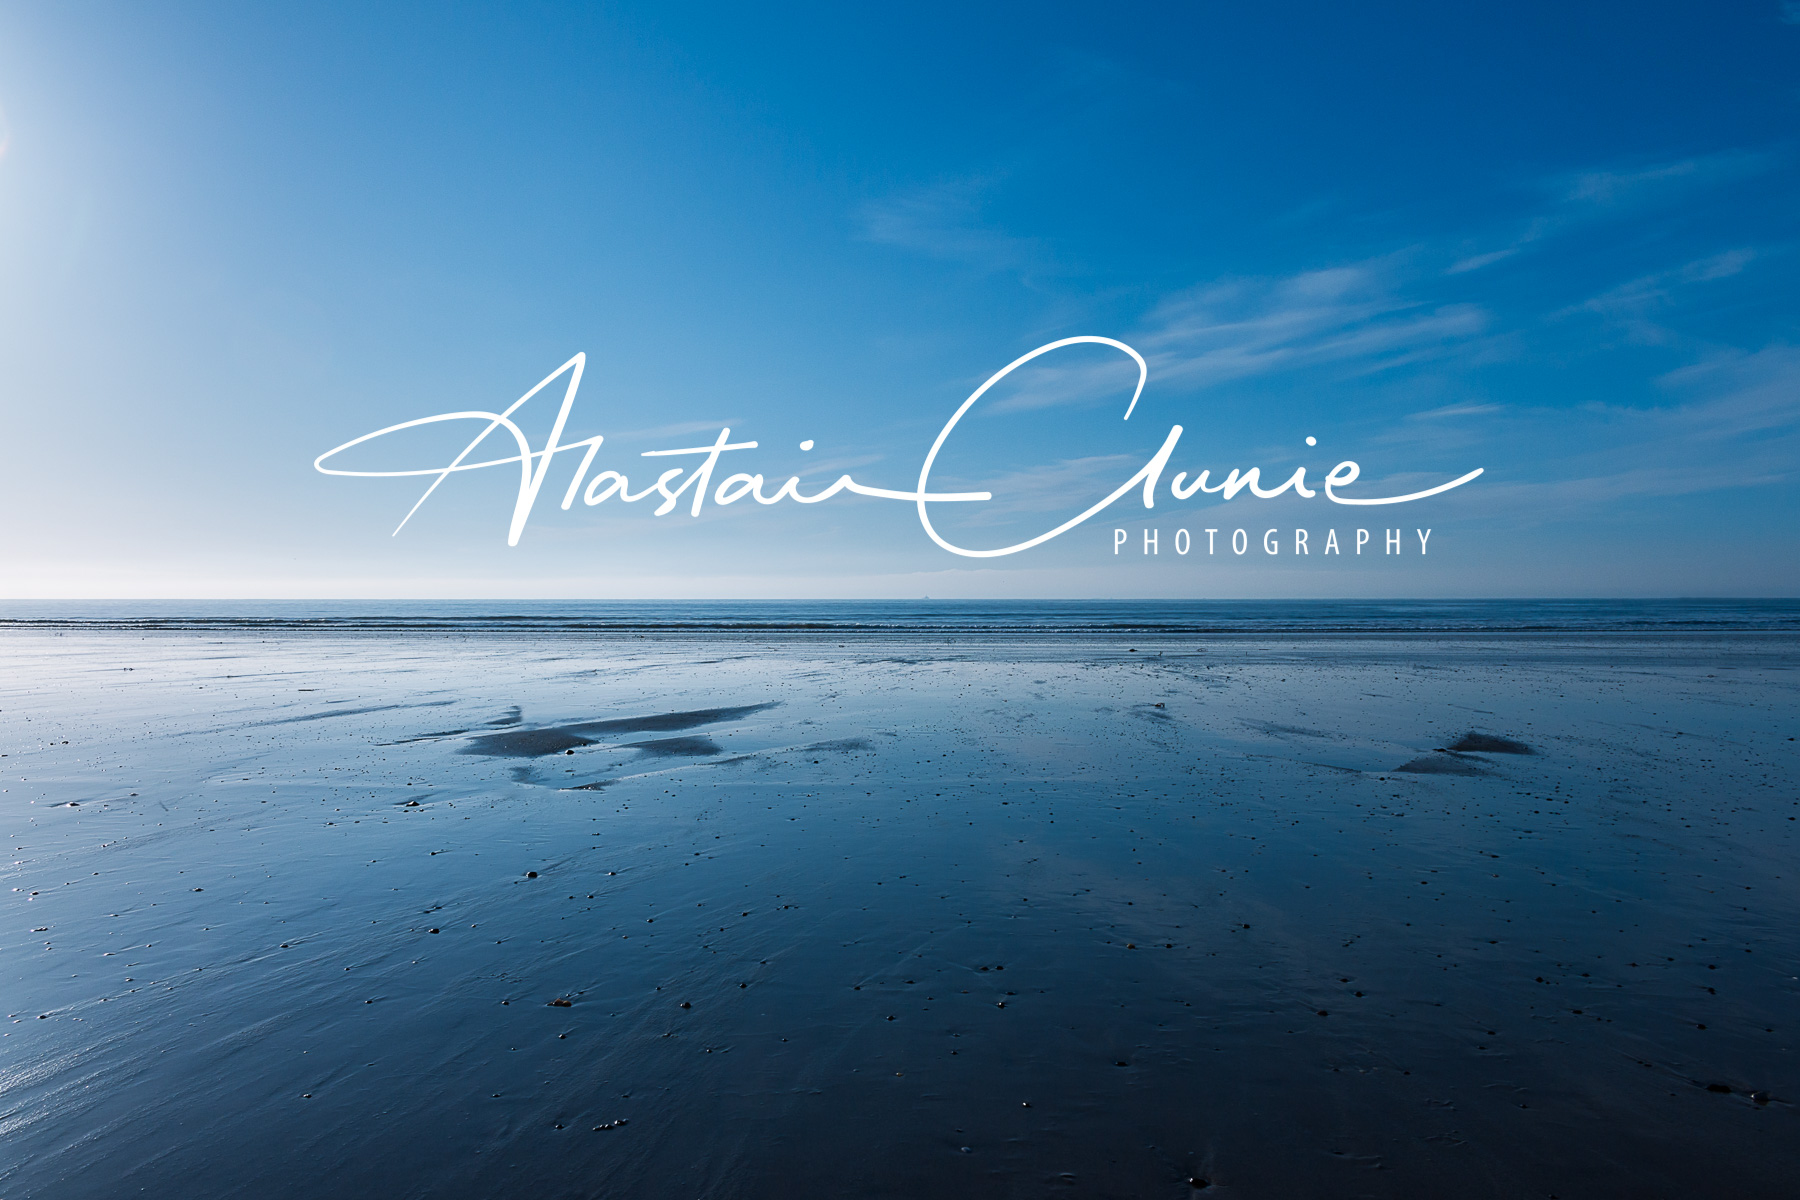 Logo, seascape, Alastair Clunie Photography